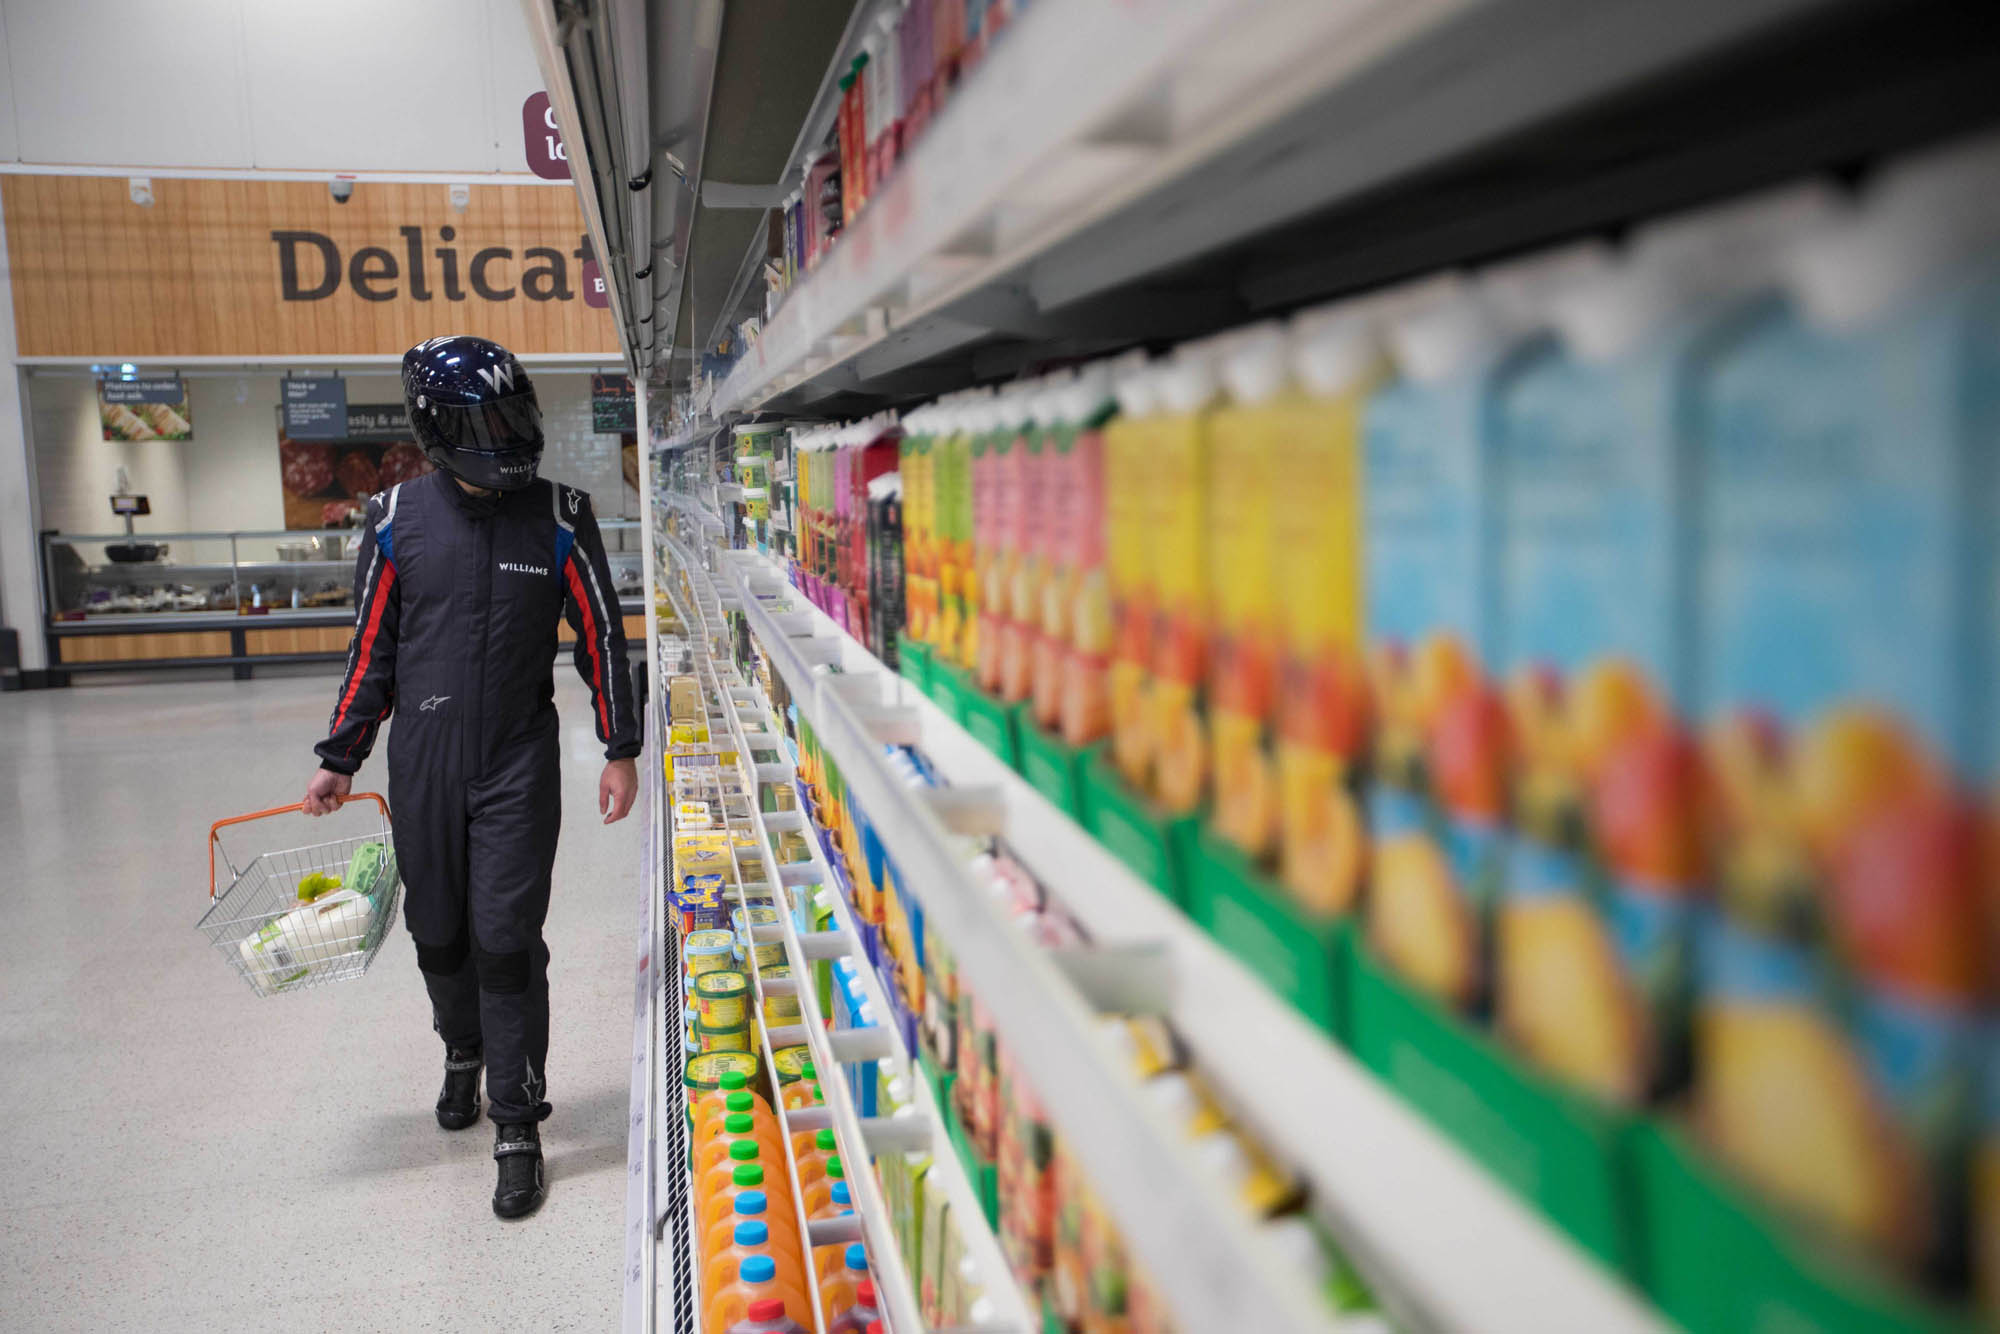 Sainsbury's to use technology developed in F1 to cool fridges (Sainsbury's)